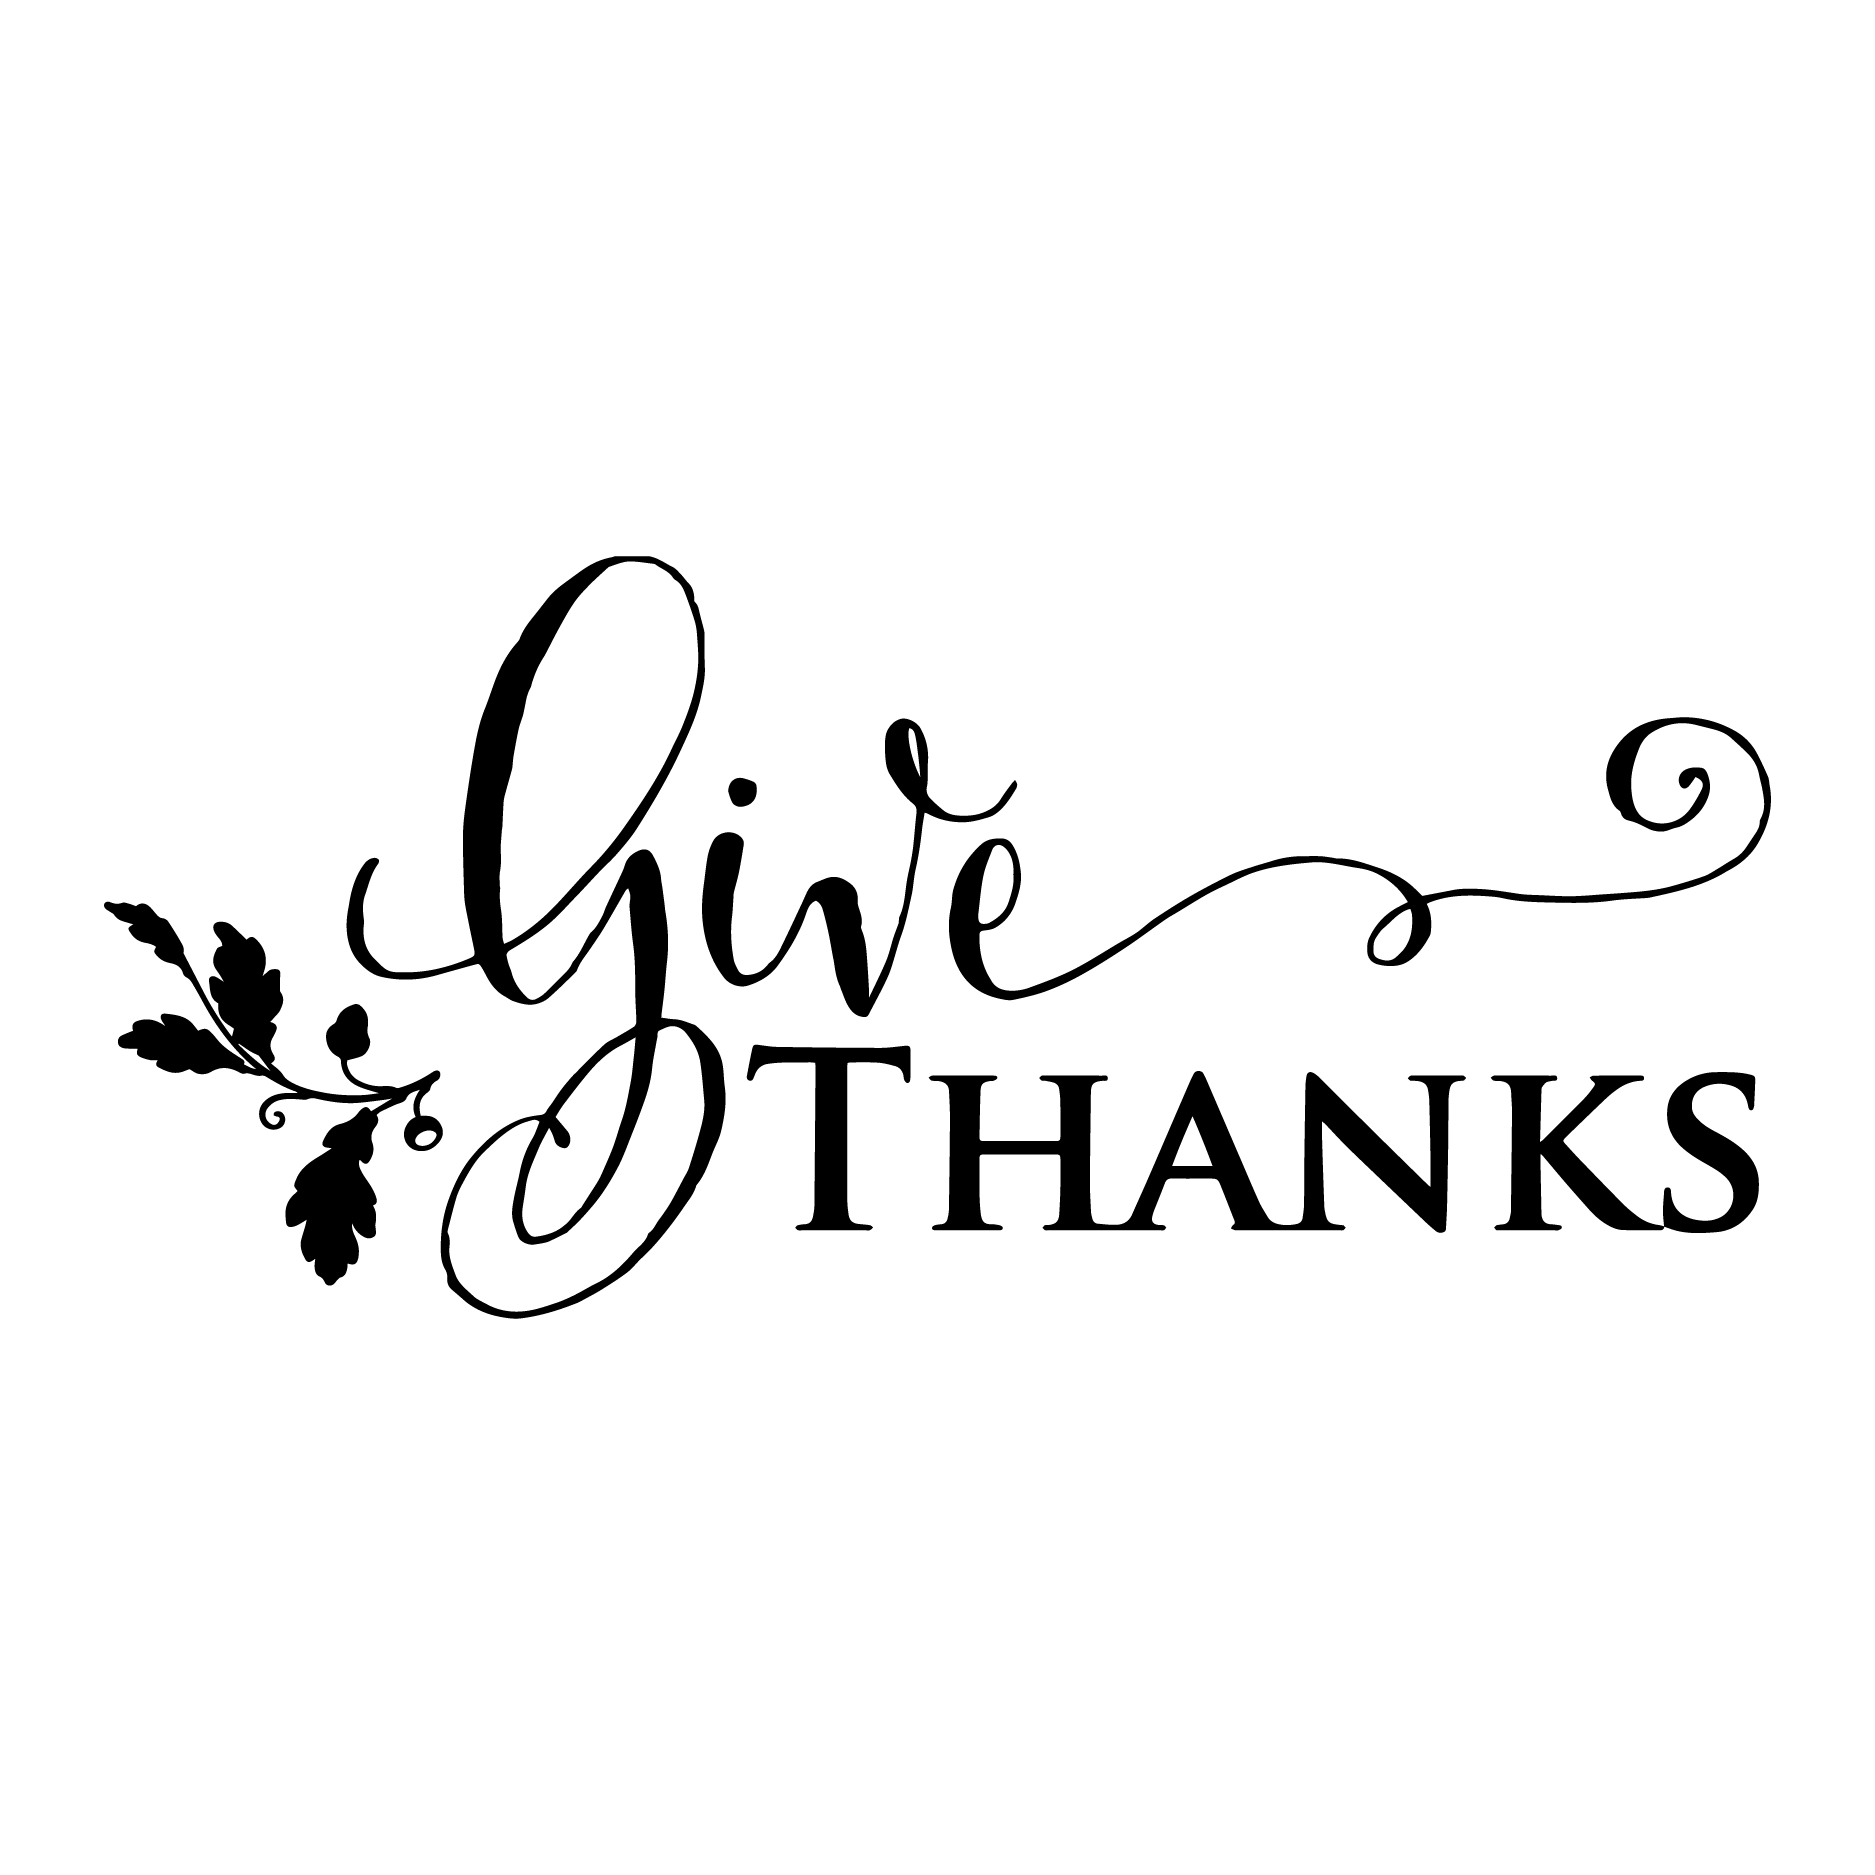 Give Thanks Acorn Wall Quotes Decal Wallquotes Com